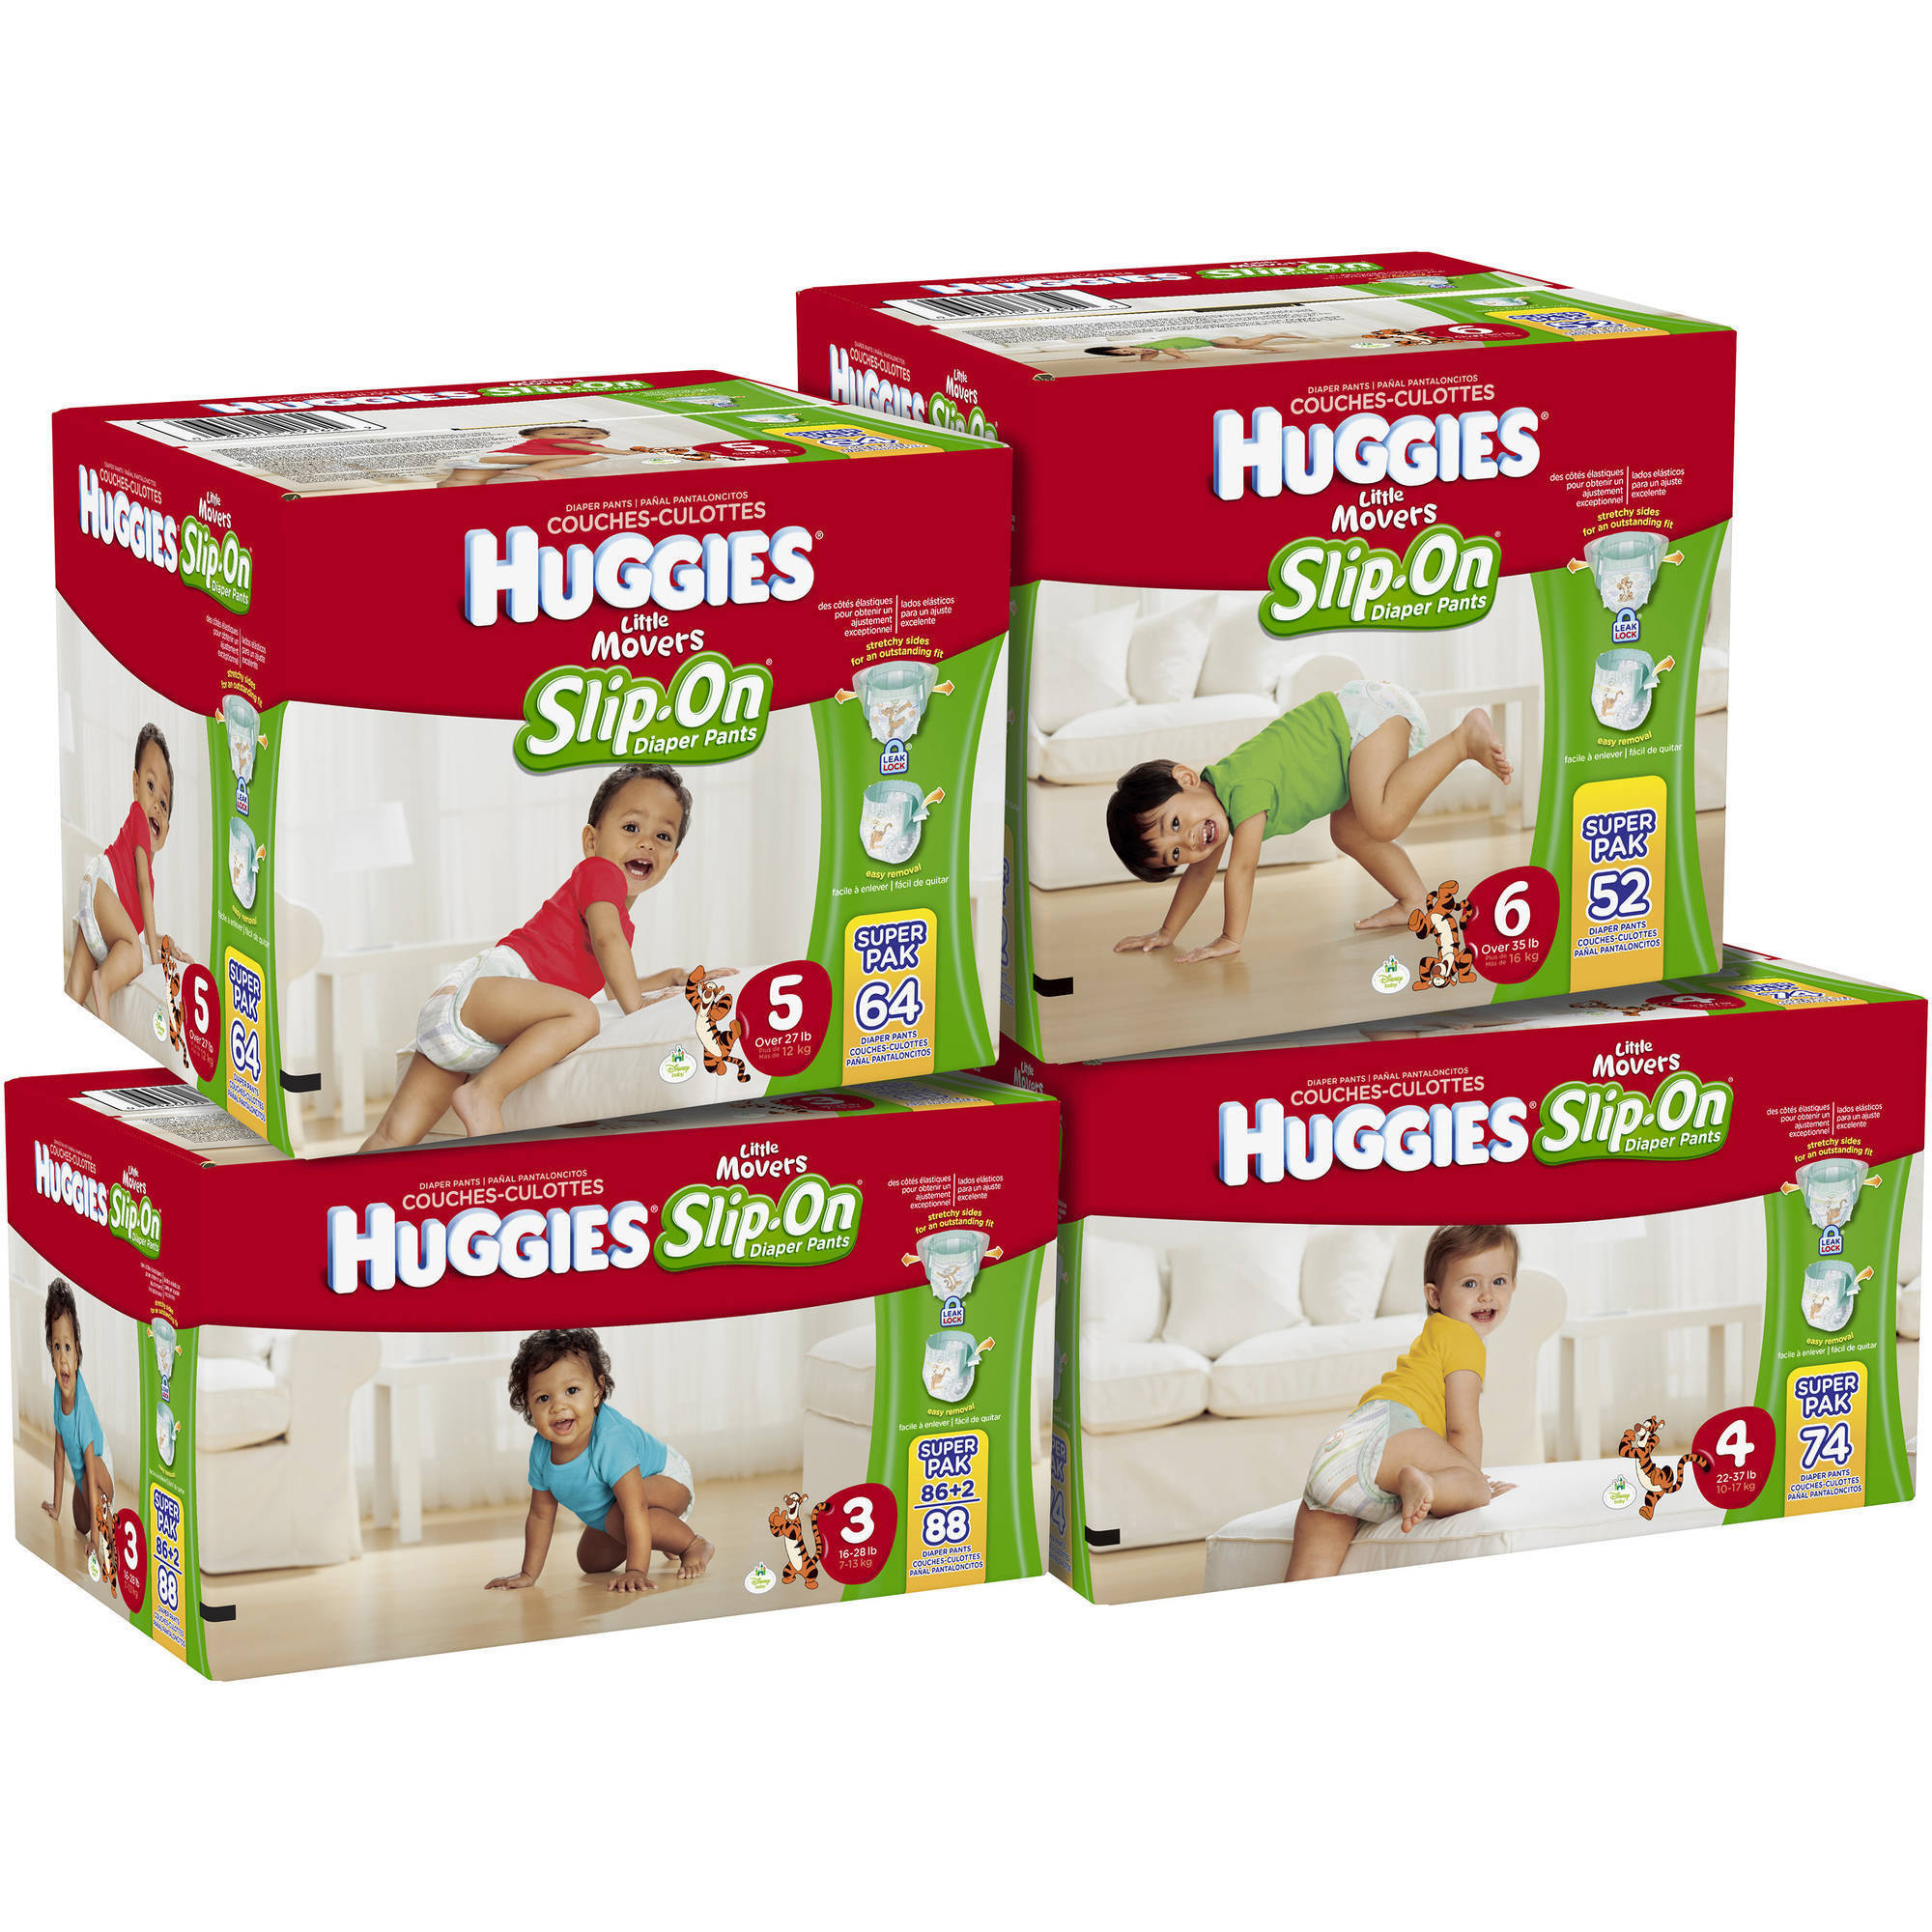 HUGGIES Little Movers Slip-On Diaper Pants, Super Pack (Choose Your Size)